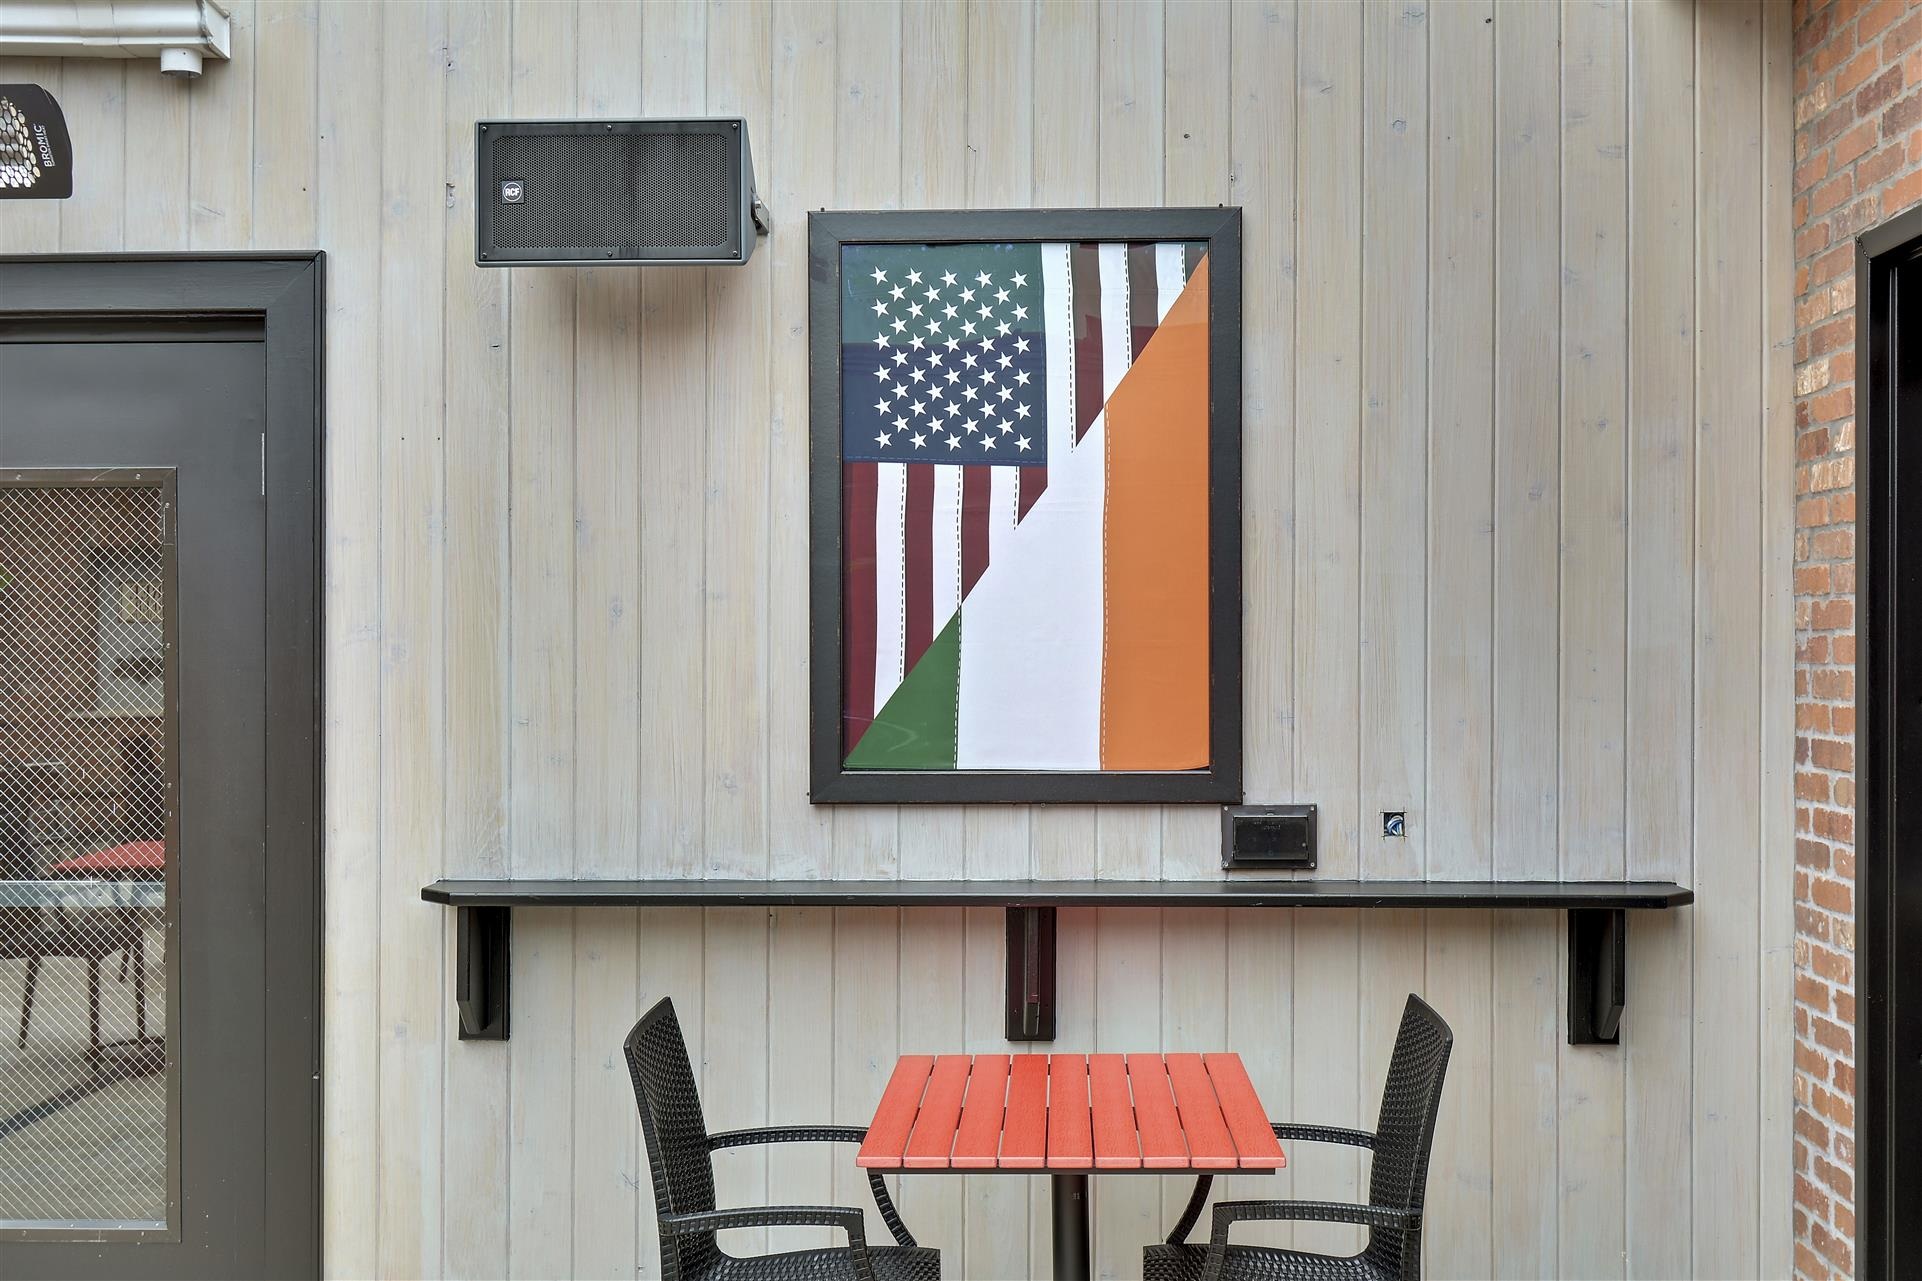 outdoor view of a flag on the wall behind a table and chairs